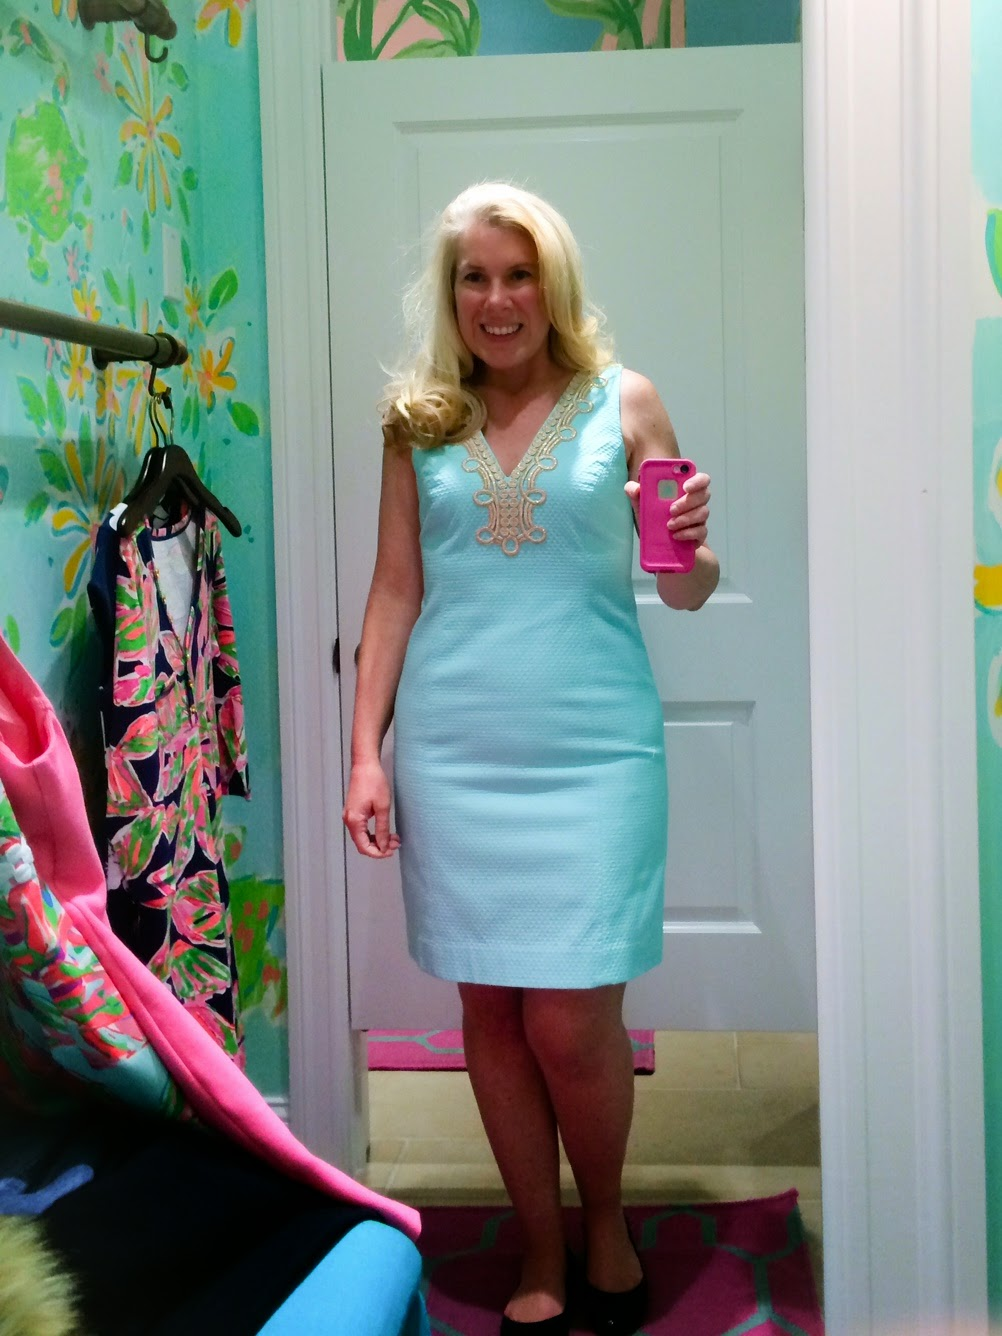 398f7eef805d09 Maryland Pink and Green: Lilly Pulitzer Spring Fit Guide & Review